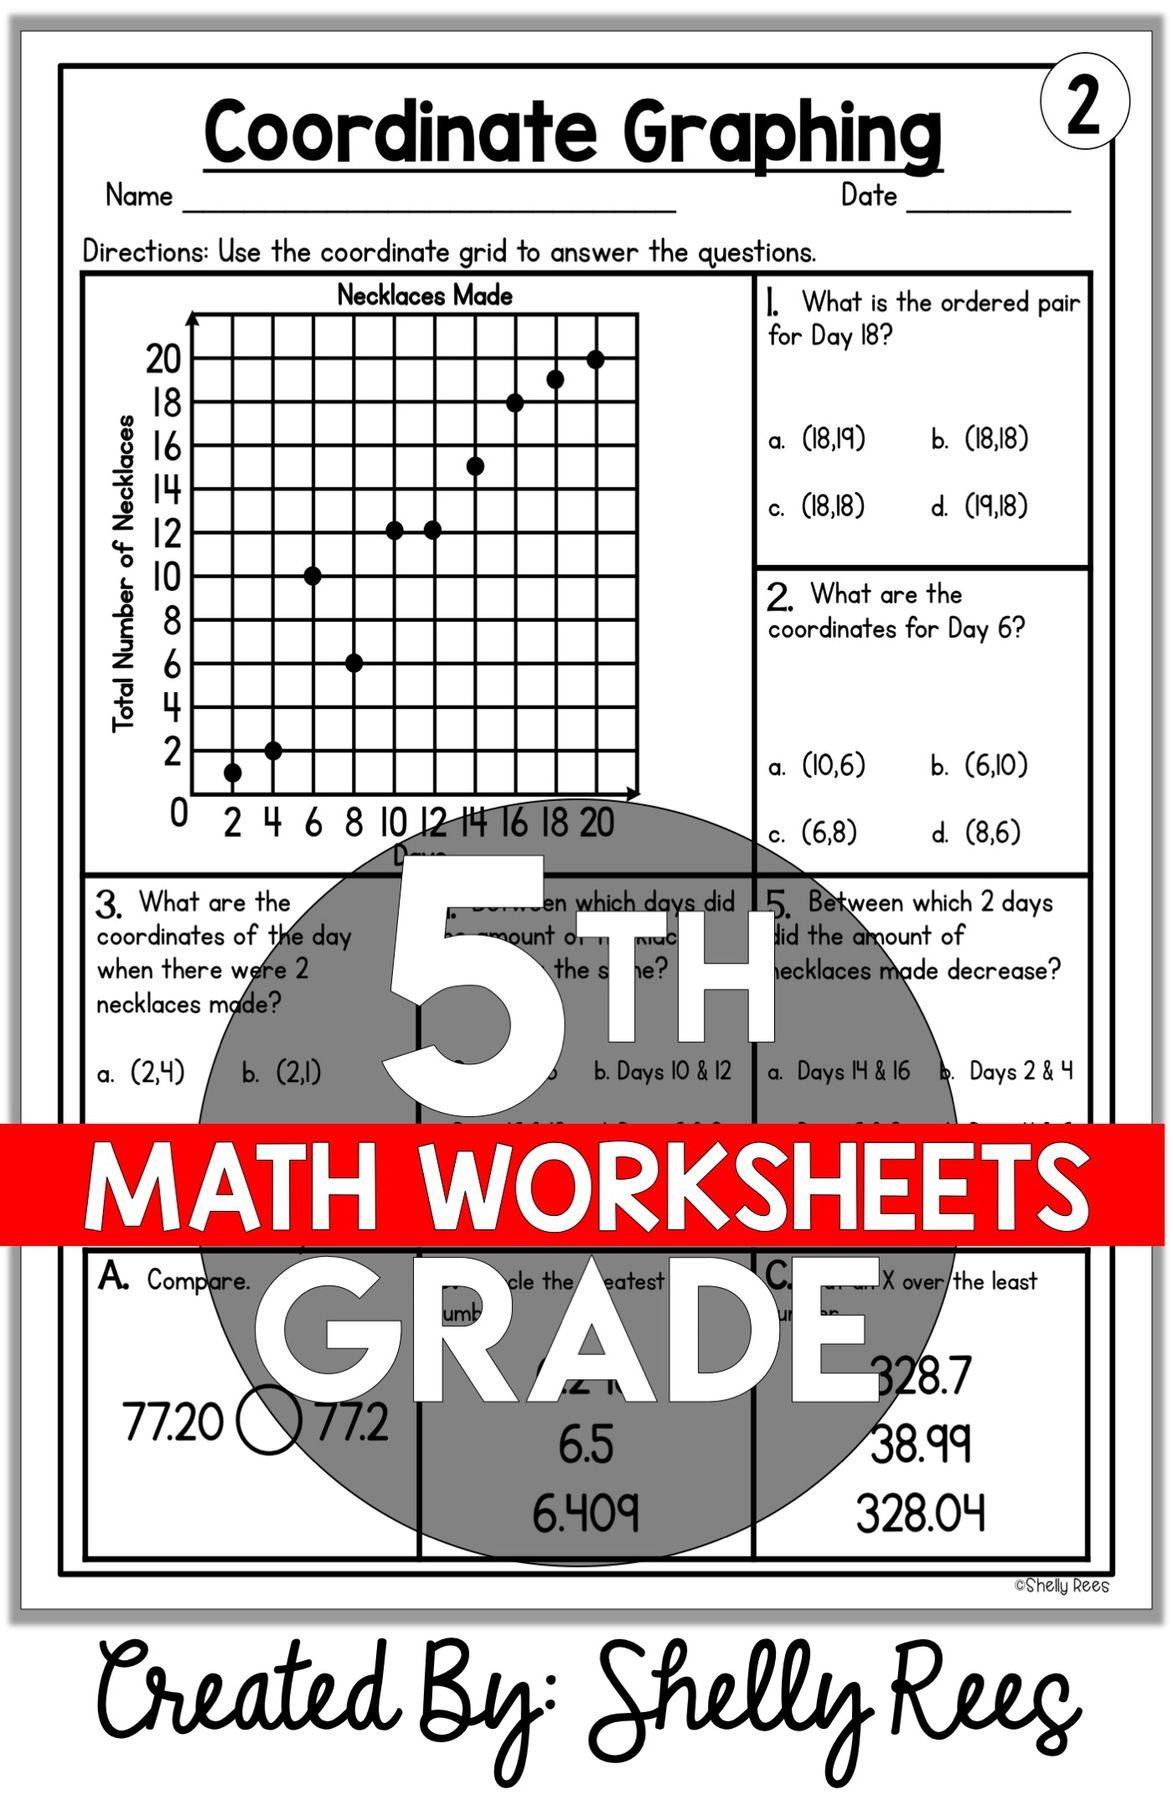 5th Grade Math Worksheets Free and Printable - Appletastic ...